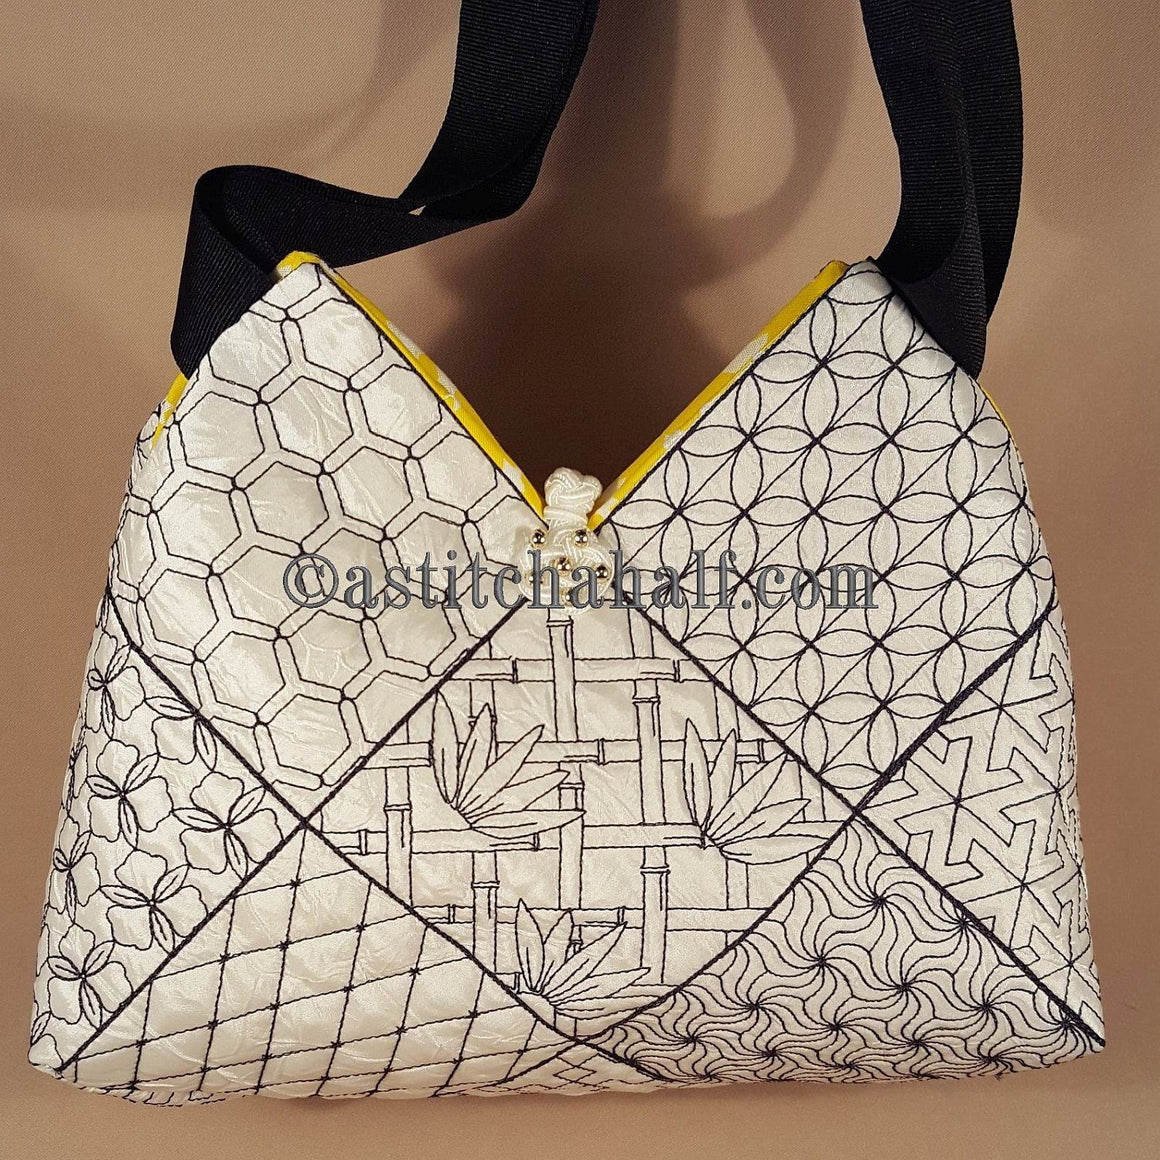 Kikko Sashiko Quilt Blocks and Tote Bag